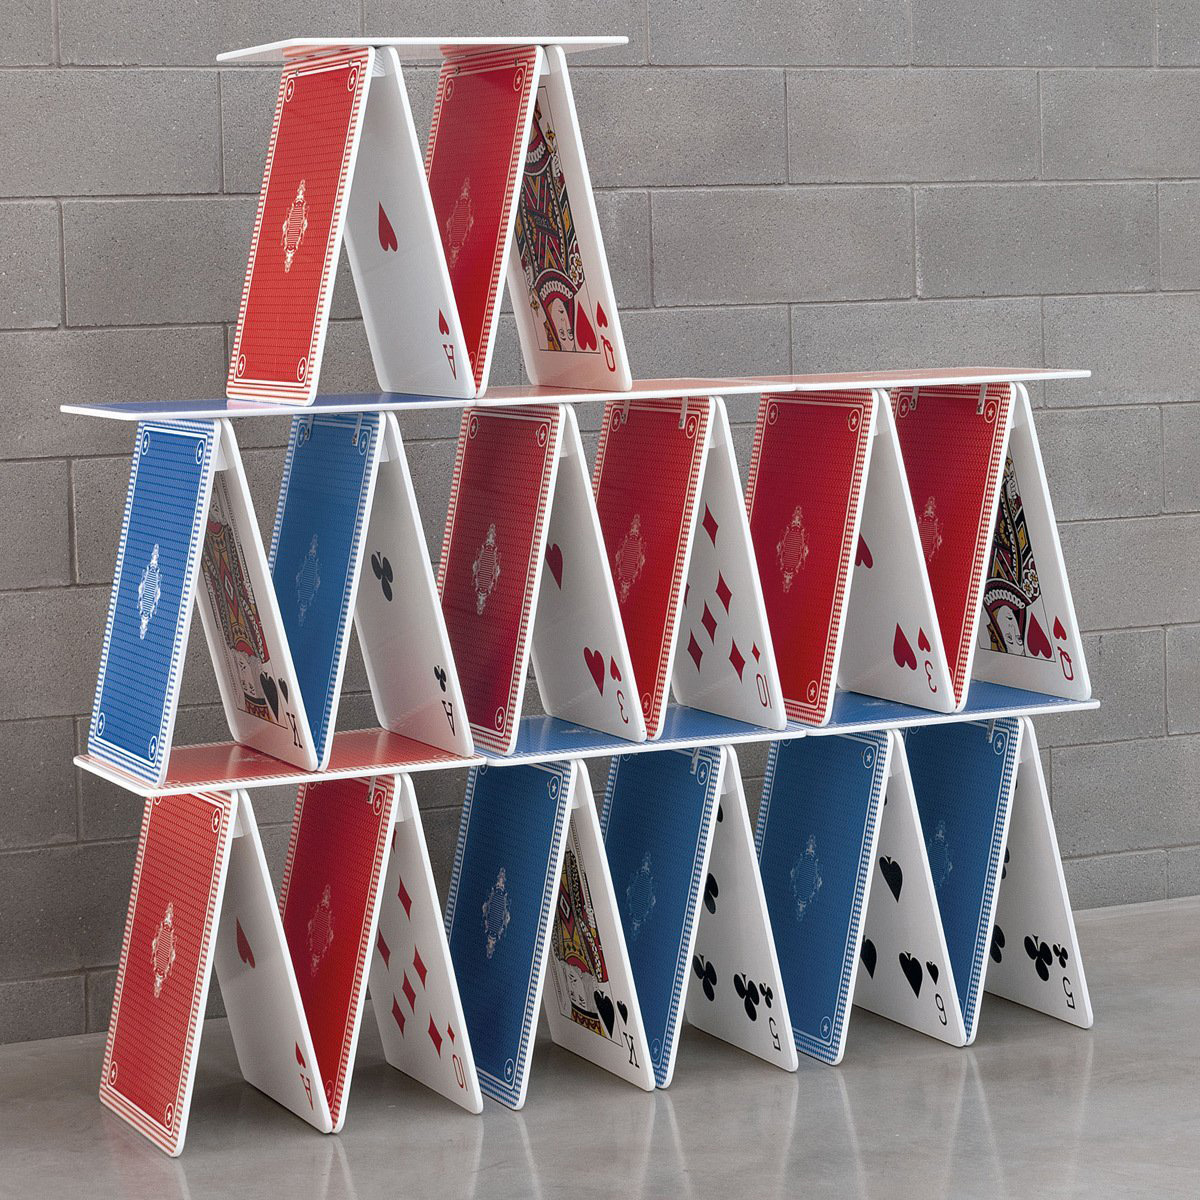 Card Stacking: Stackable Playing Card Table / Shelf